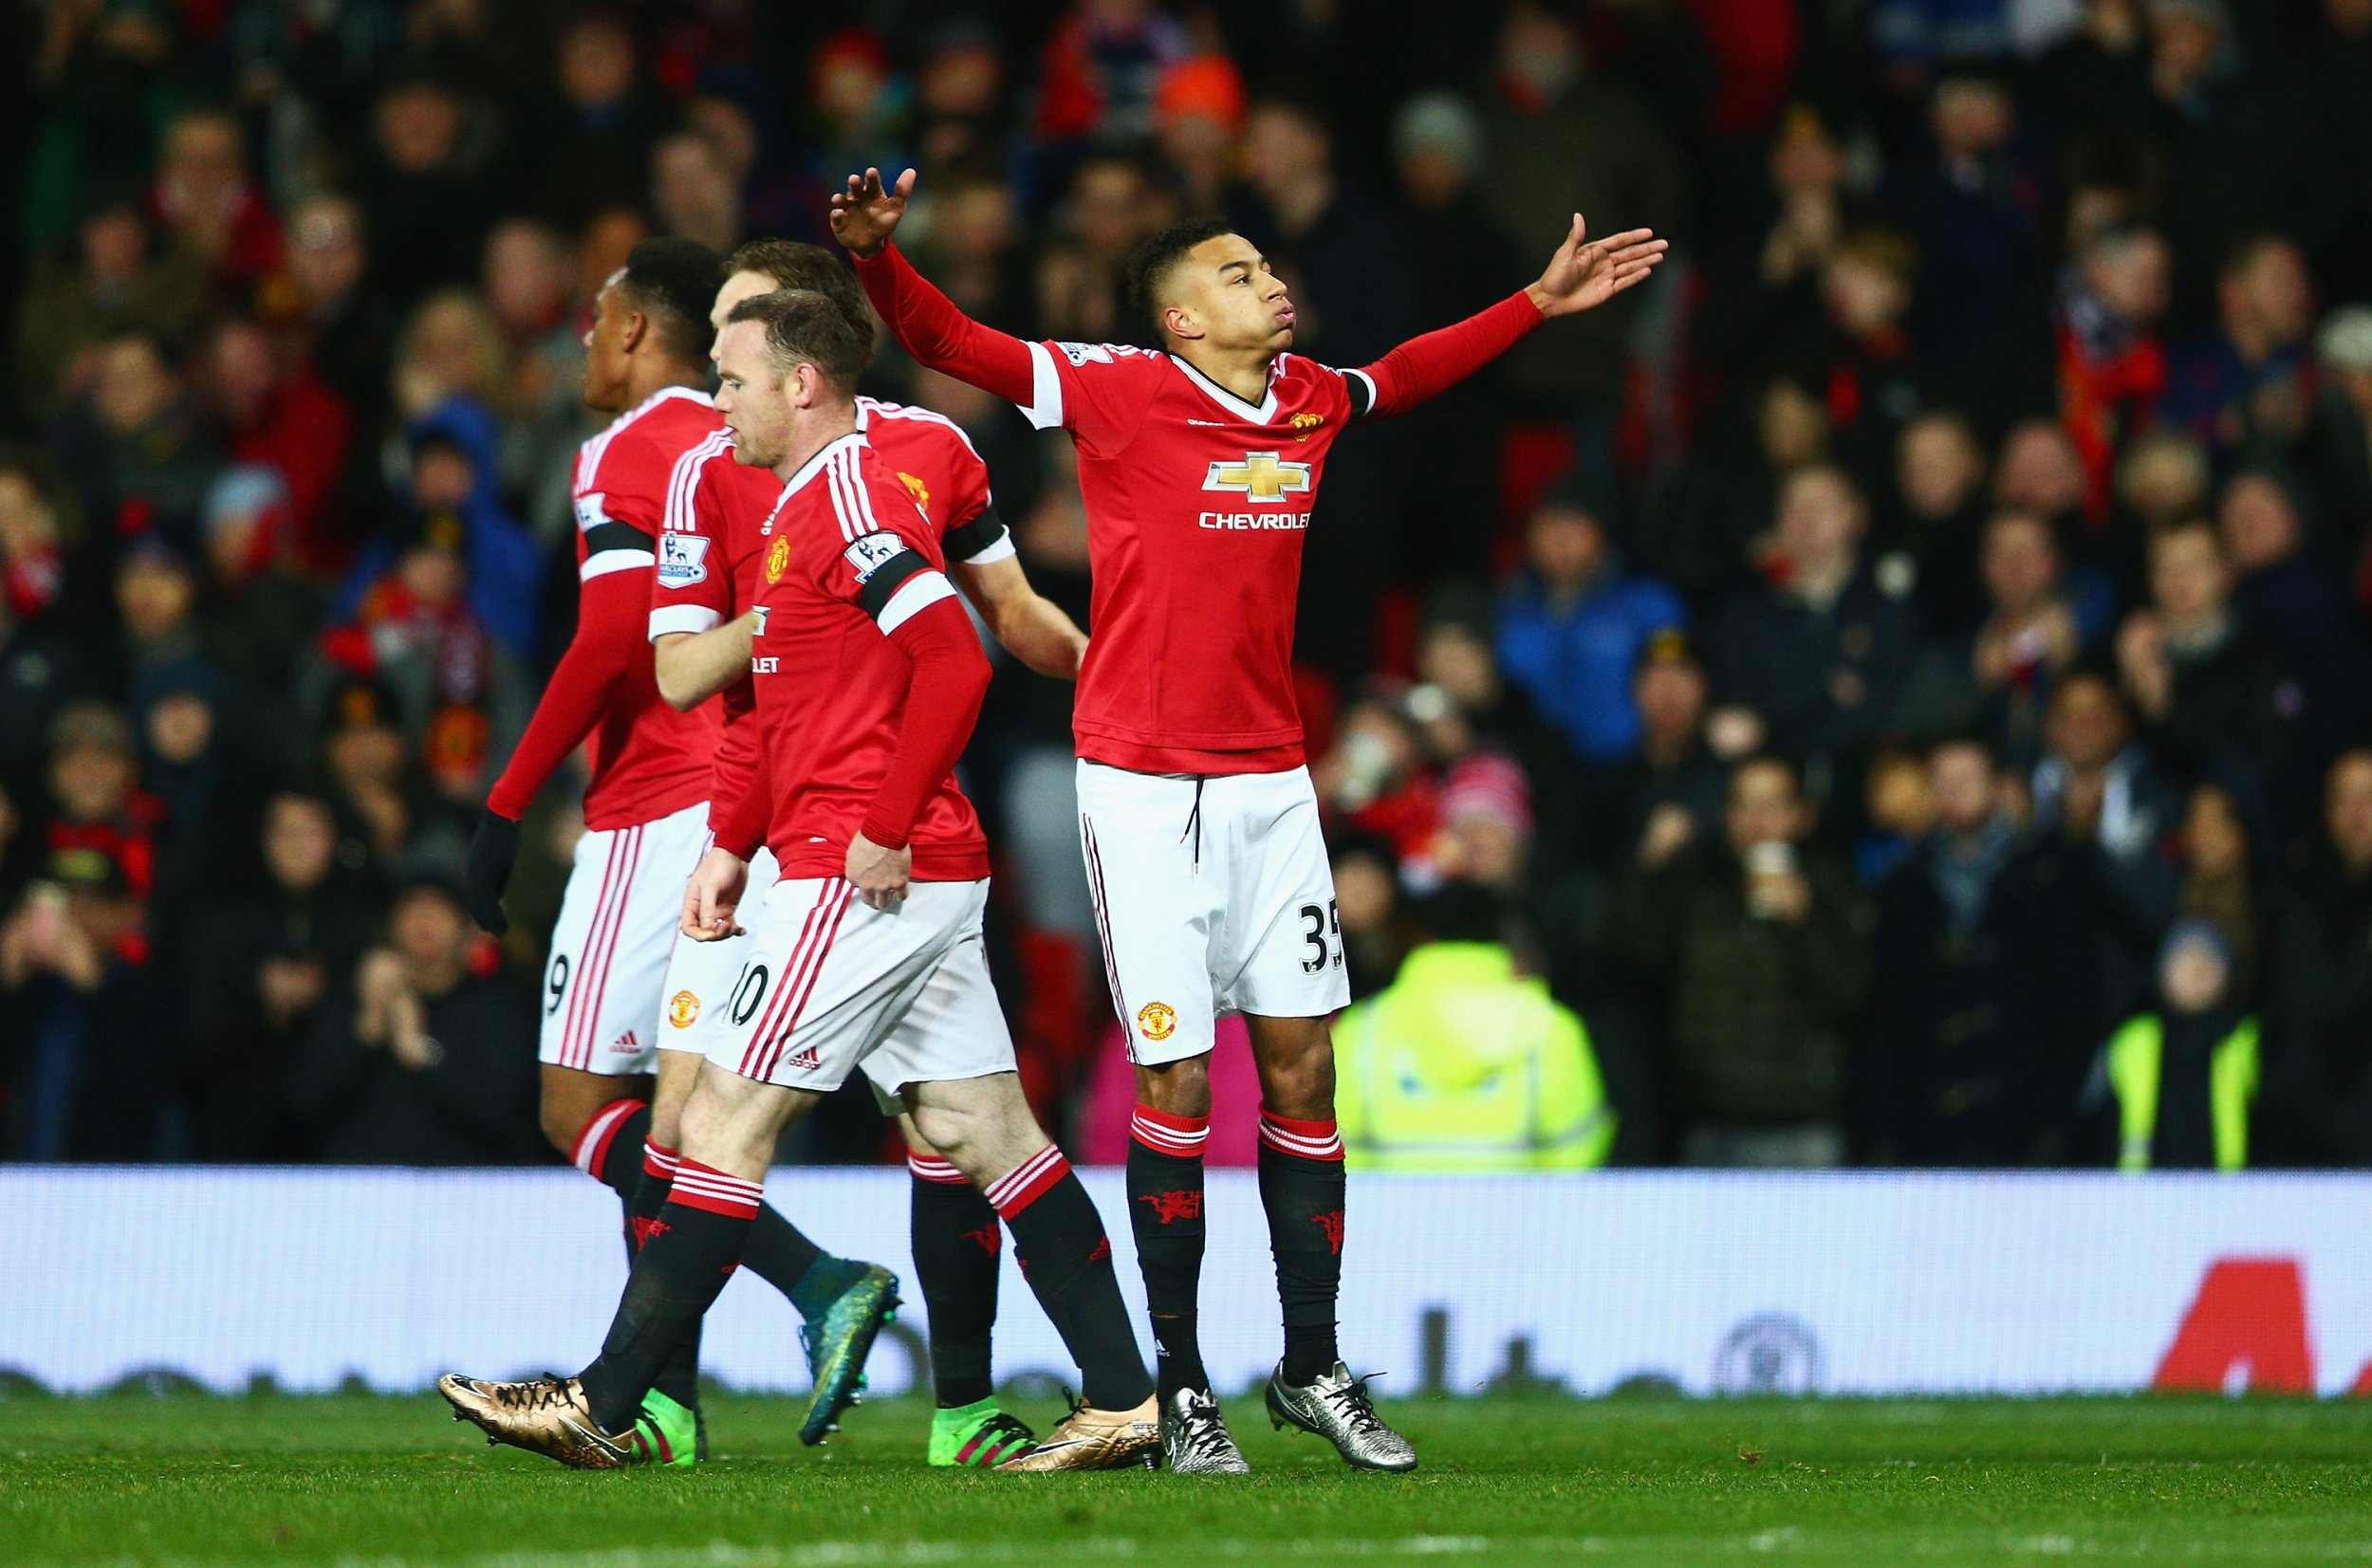 Jesse Lingard after scoring at Old Trafford on Tuesday.